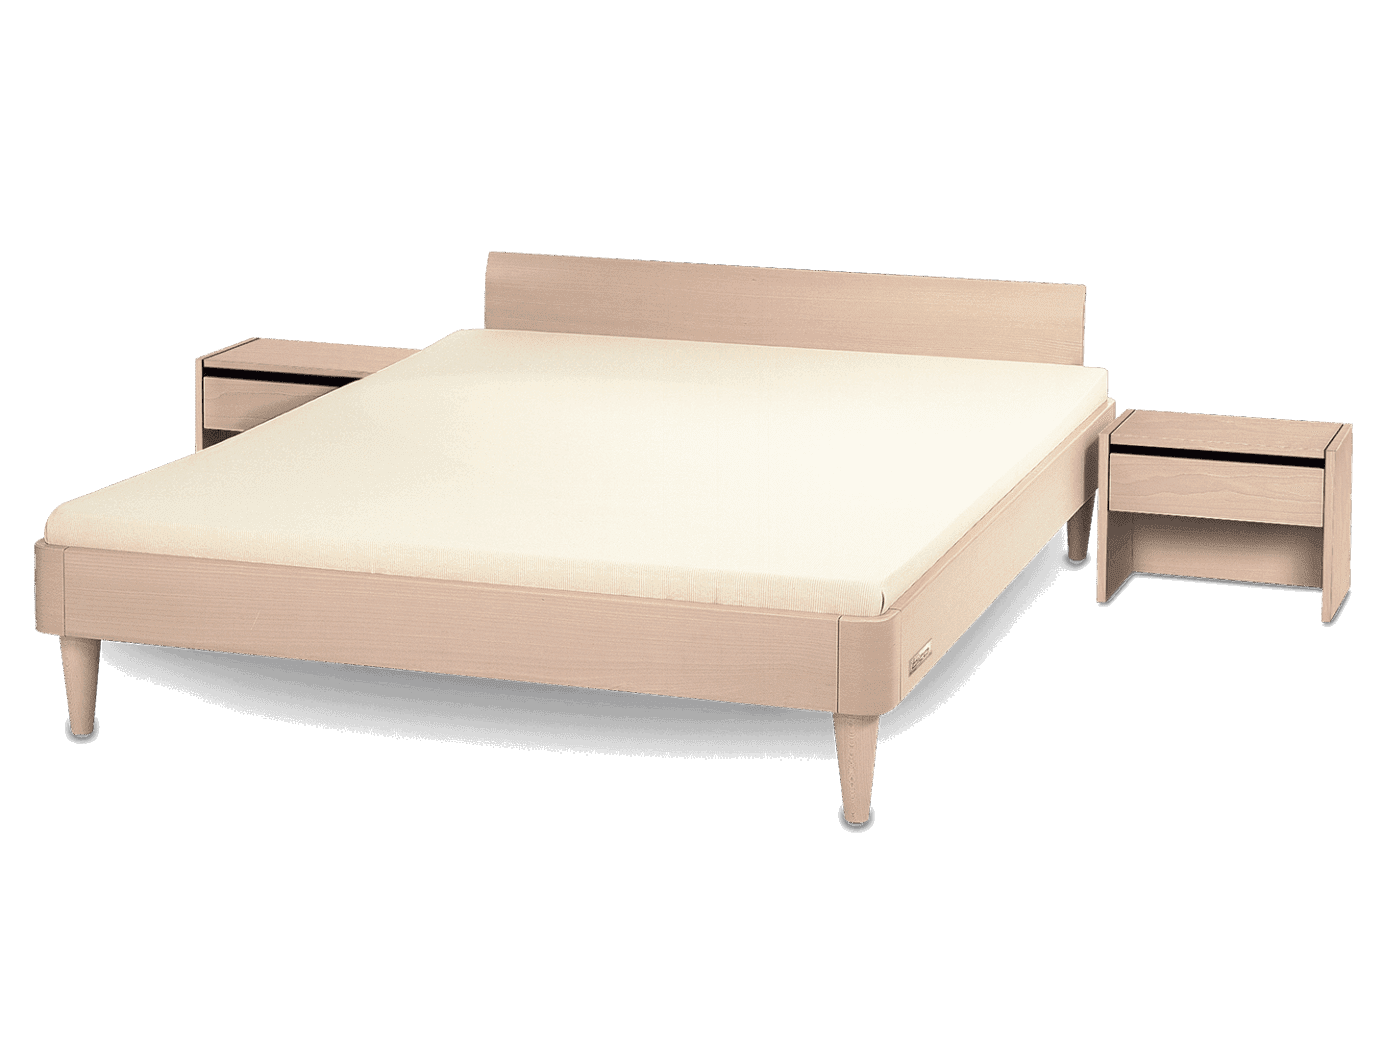 BICO Selection Bett Lenco 1440x1080